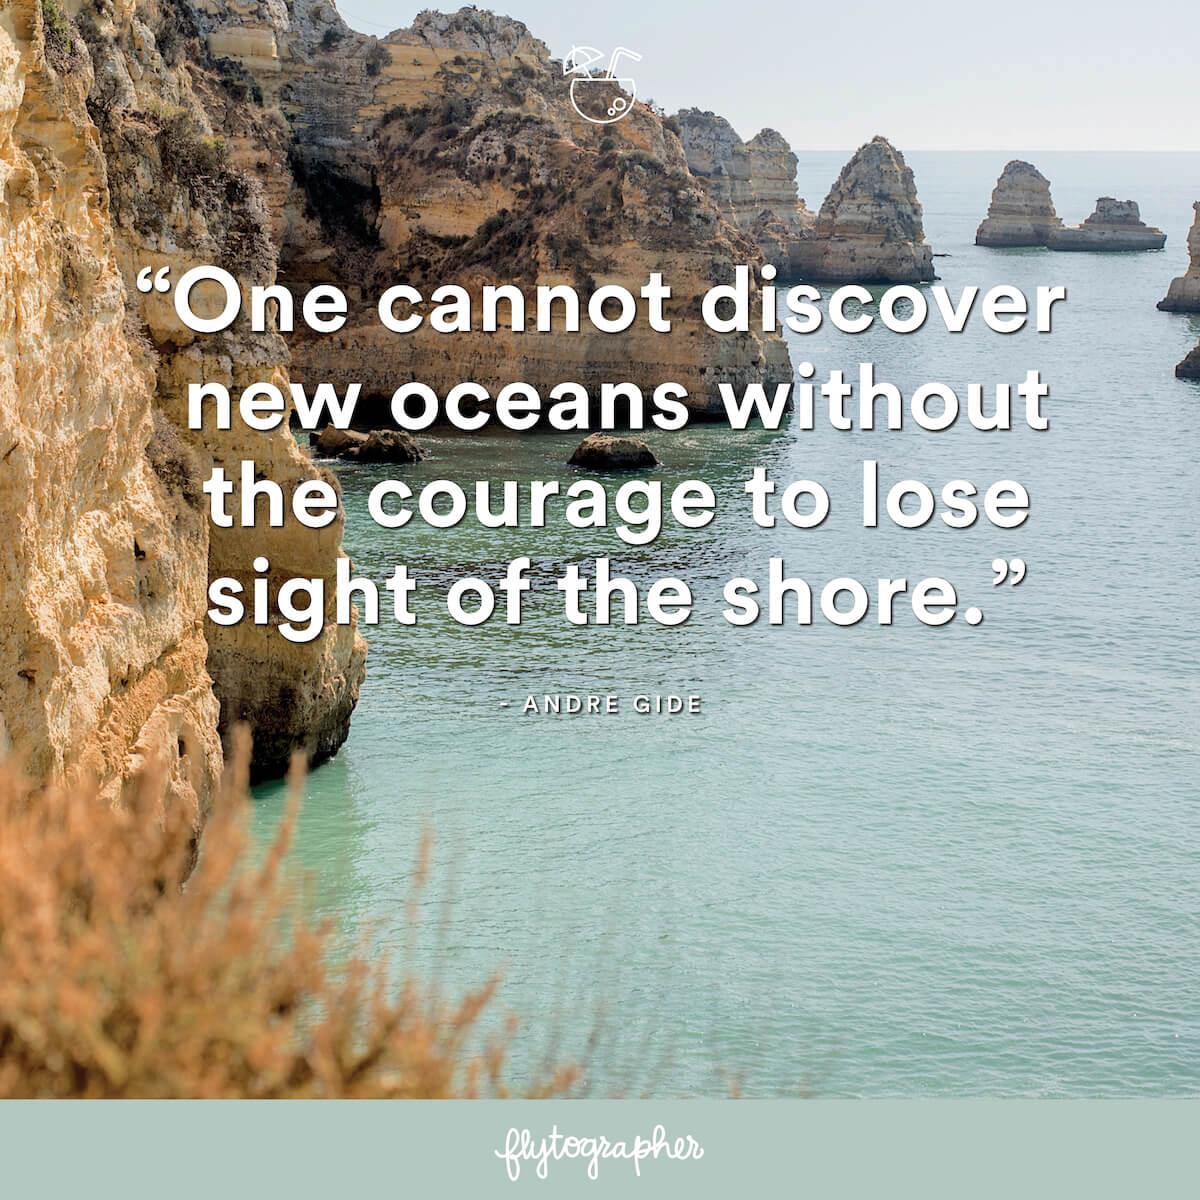 "Travel quote: ""One cannot discover new oceans without the courage to lose sight of the shore."" - Andre Gide"